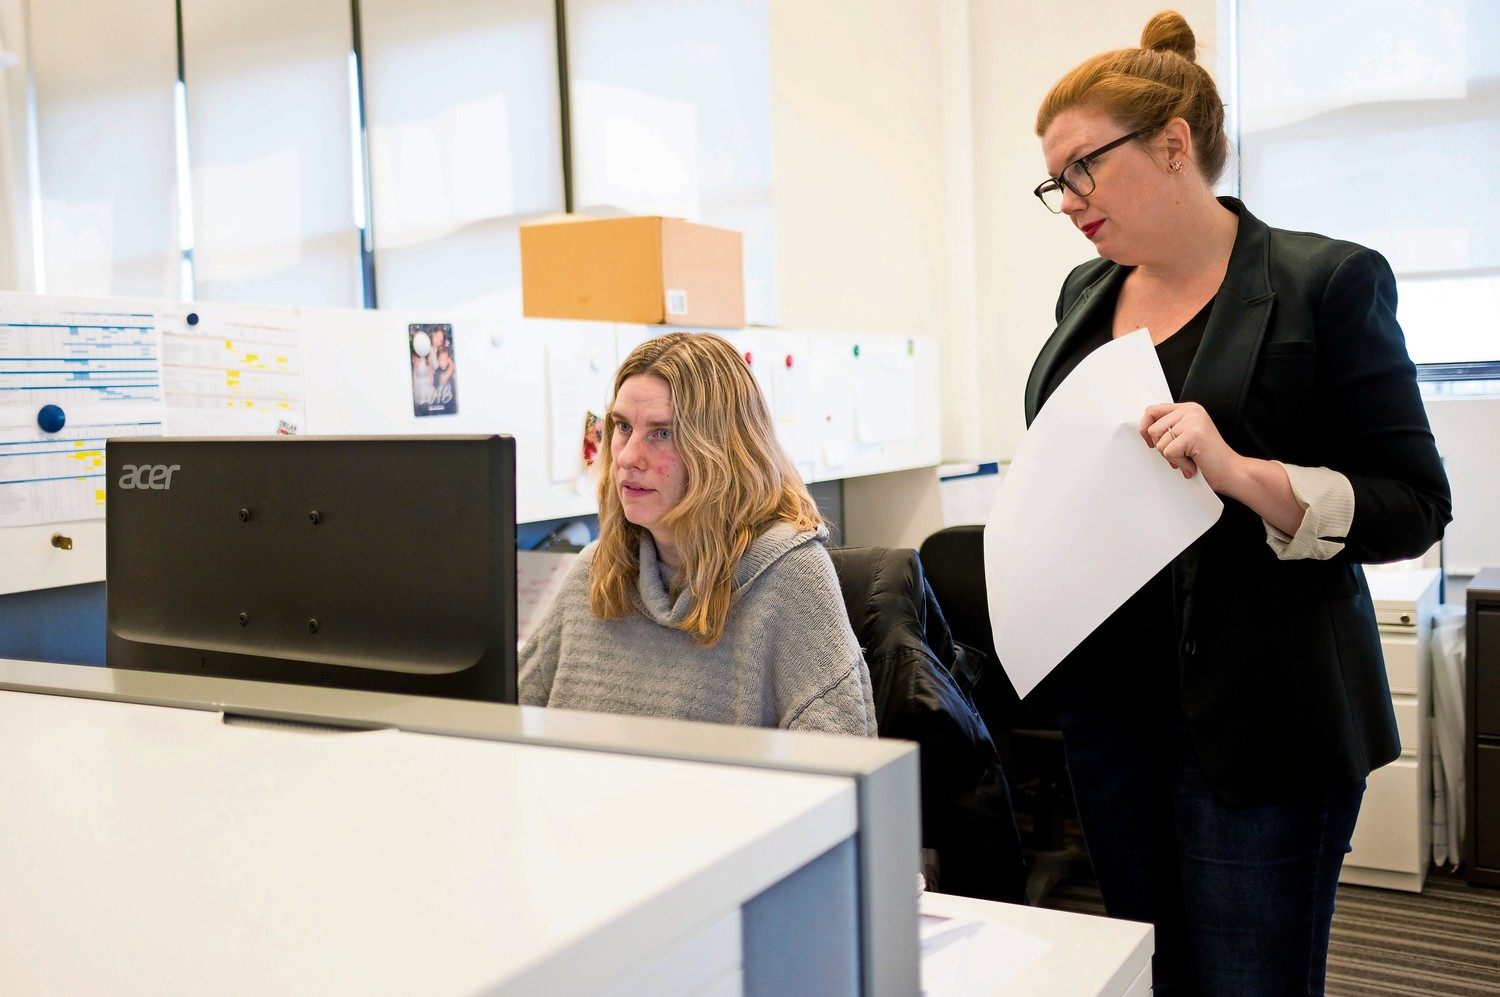 Kristin Ruiz, left, and Ali McSherry discussing marketing materials at LiveOnNY, a nonprofit organization dedicated to facilitating organ donations. The minimum age required to be an organ donor was recently lowered from 18 to 16.